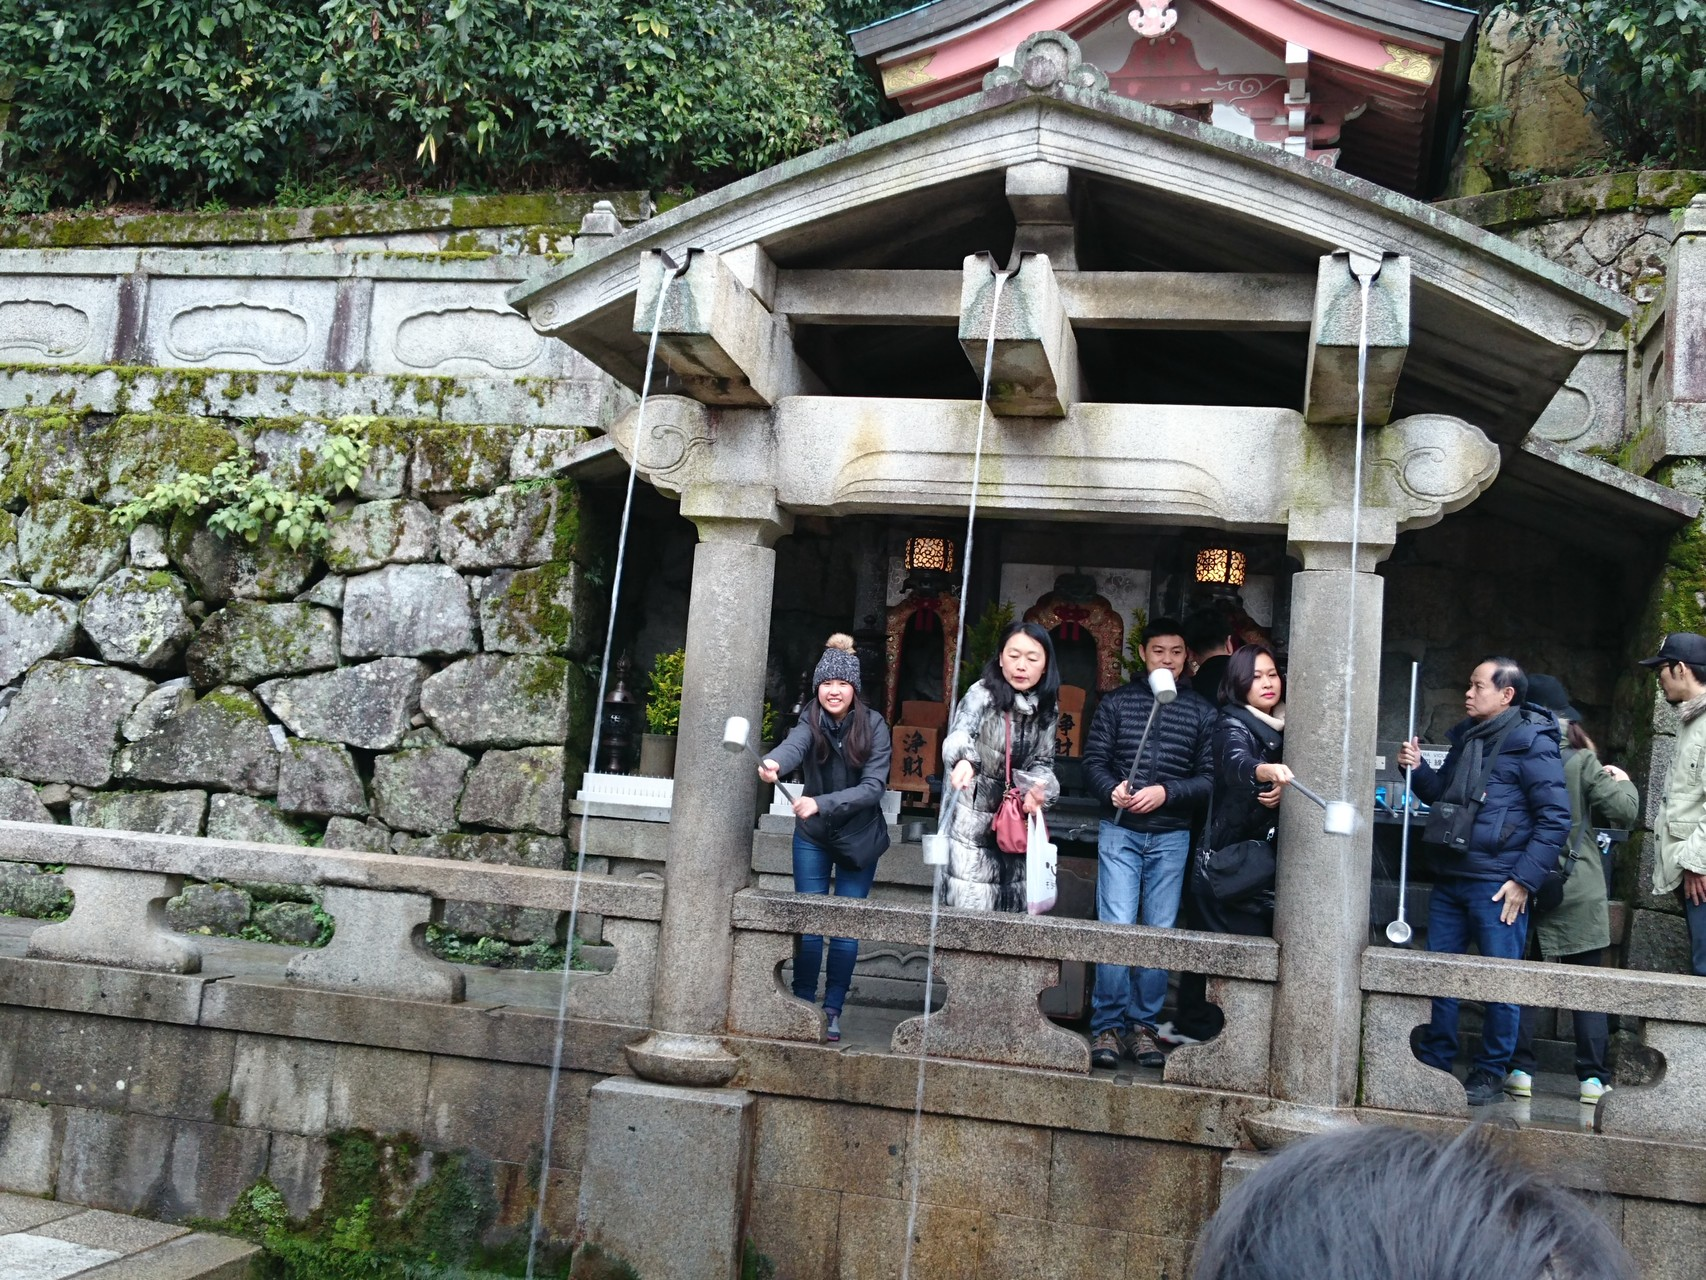 Otowa Waterfall, where visitors can drink the sacred Otowa Water from a ladle